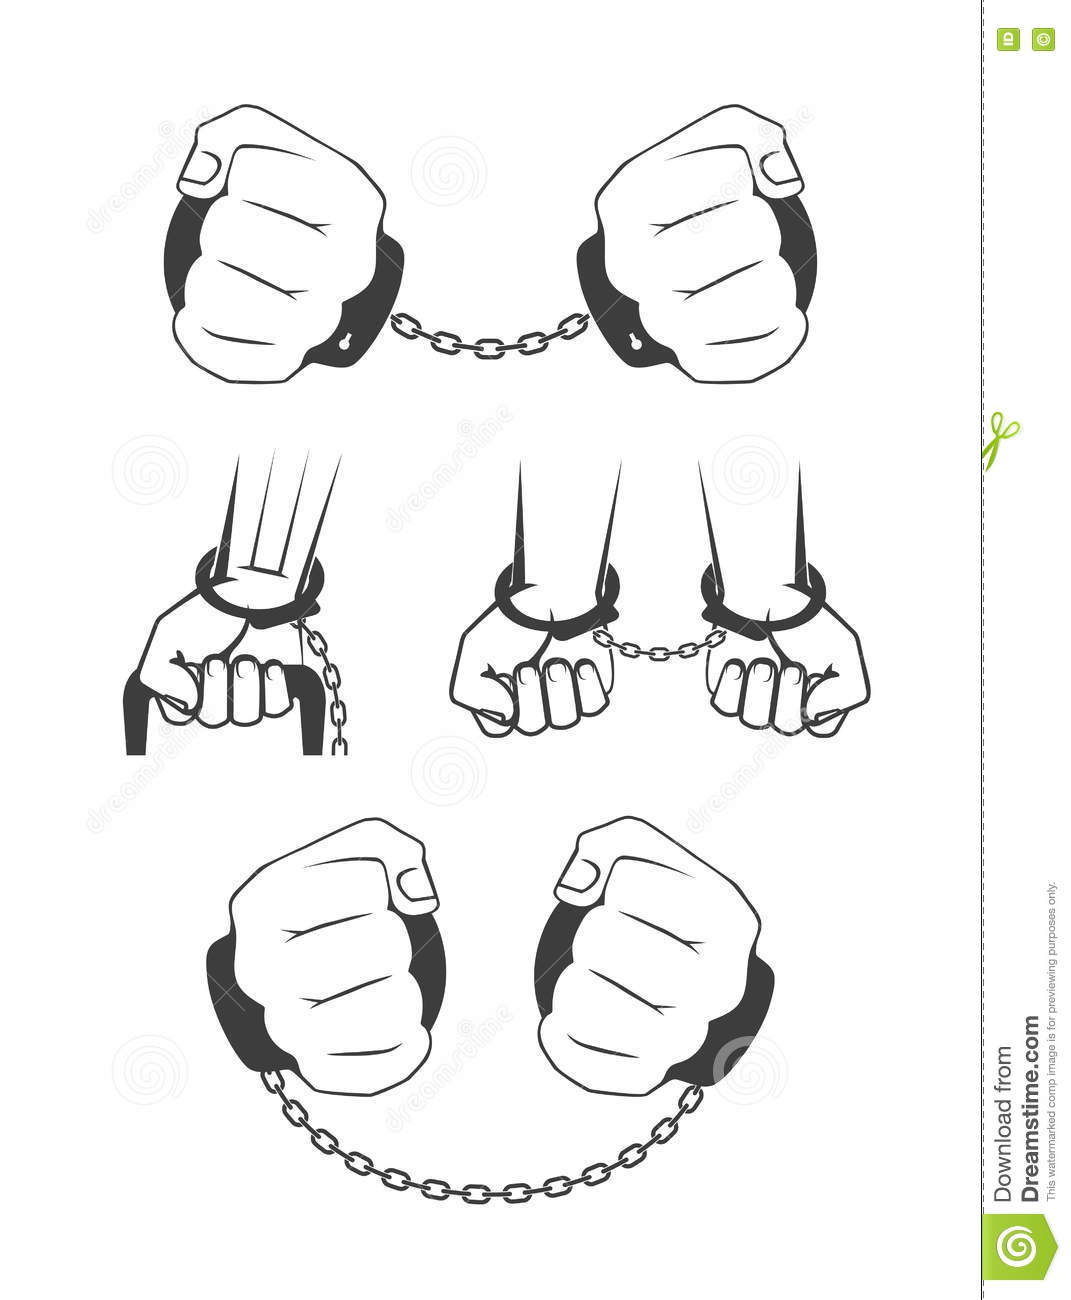 Manacles Cartoons, Illustrations & Vector Stock Images